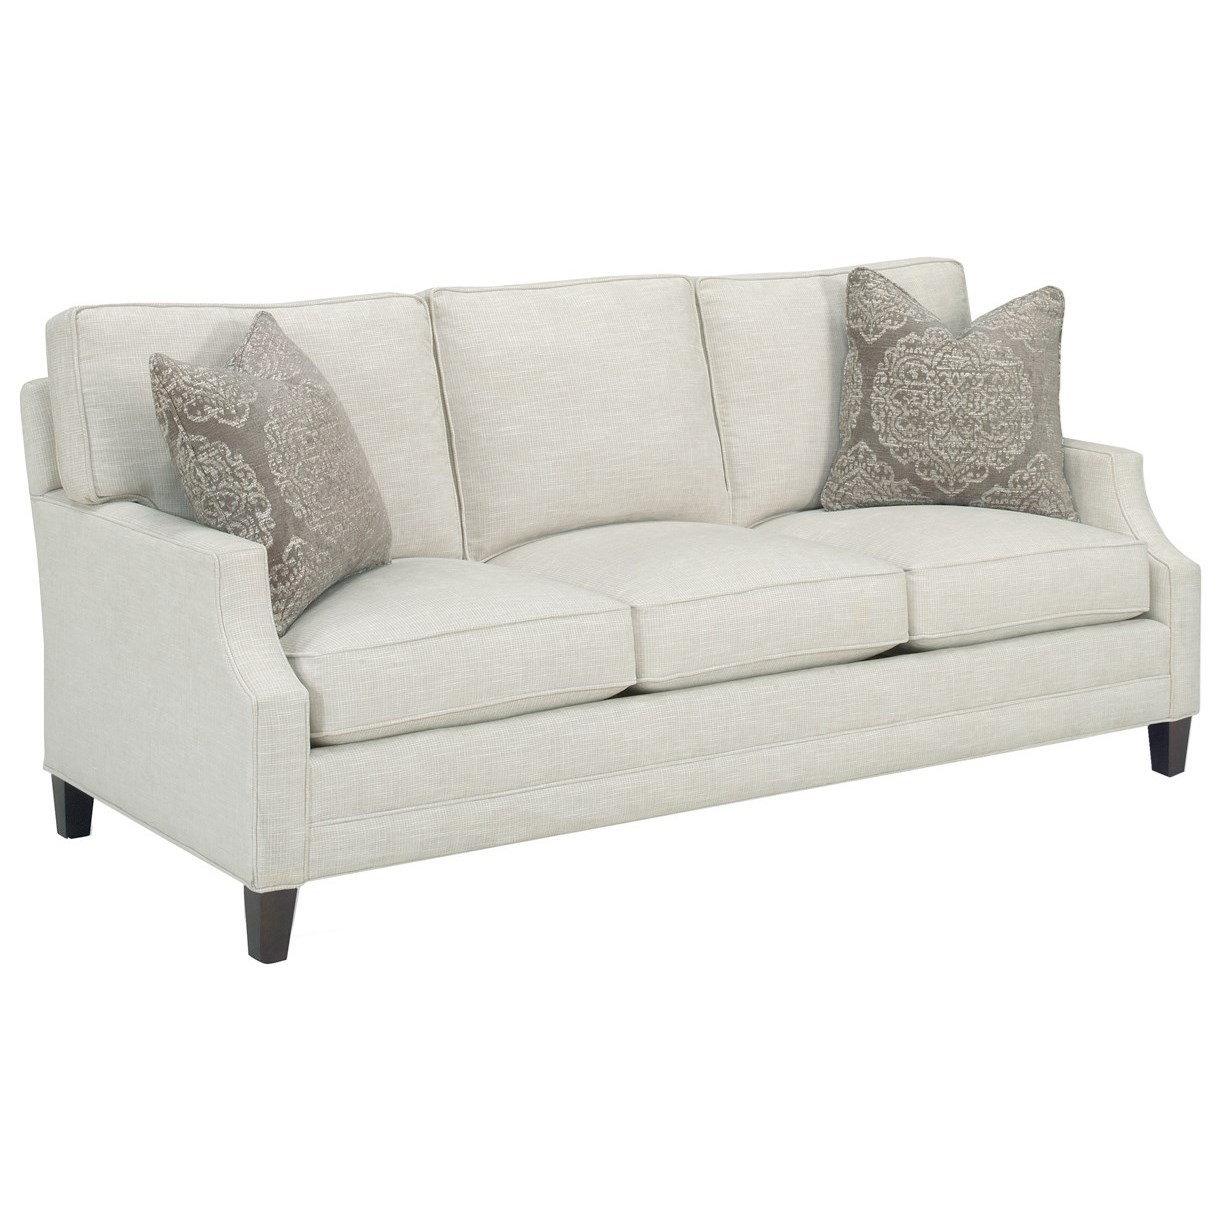 Personal Design Series Bristol Customizable Sofa by Lexington at Johnny Janosik